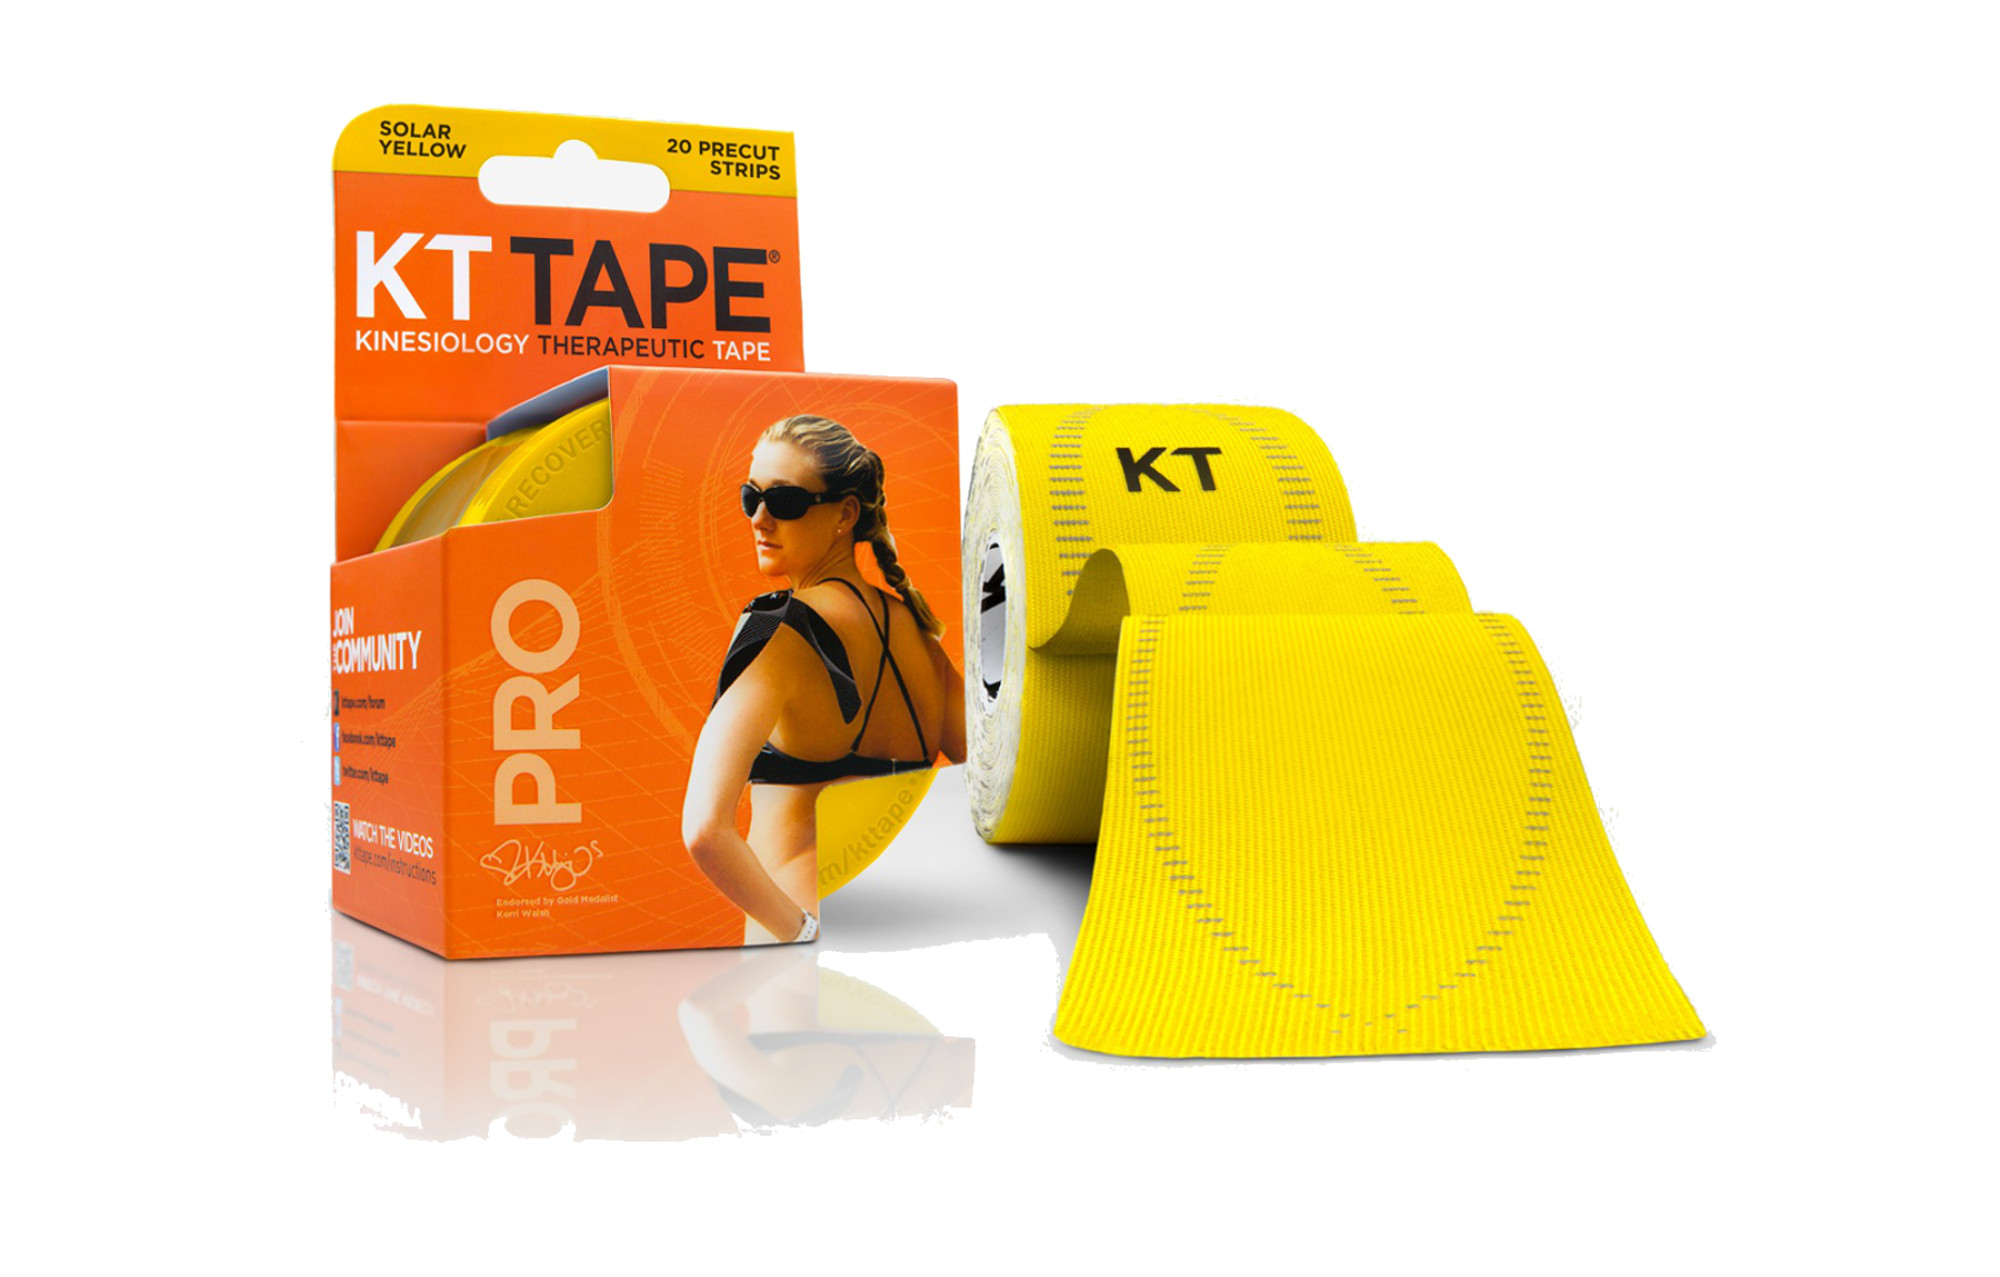 KT Tape Kinesiology Therapeutic Body Tape Roll of 20 Strips Navy Blue